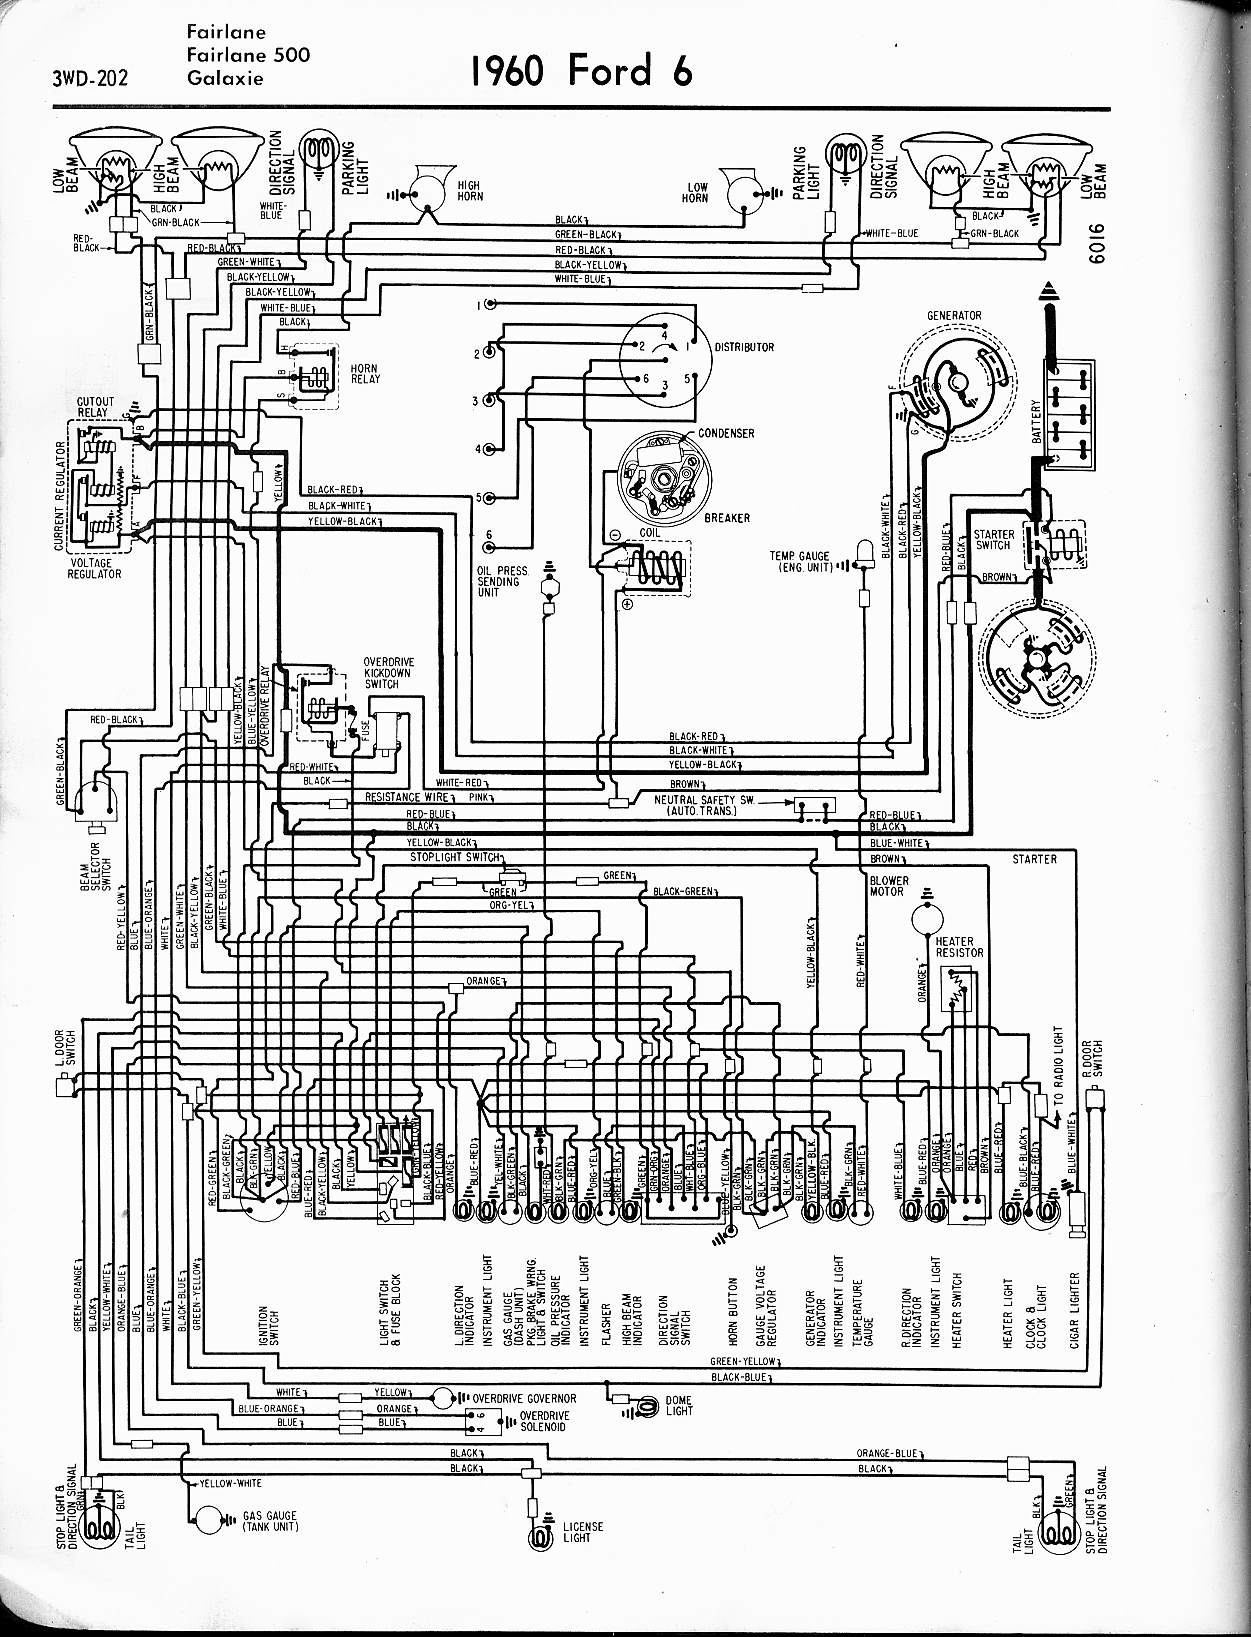 MWire5765 202 100 [ 1969 camaro wiring diagram ] need 91 92 headlight wiring 1965 ford f100 wiring schematics at crackthecode.co